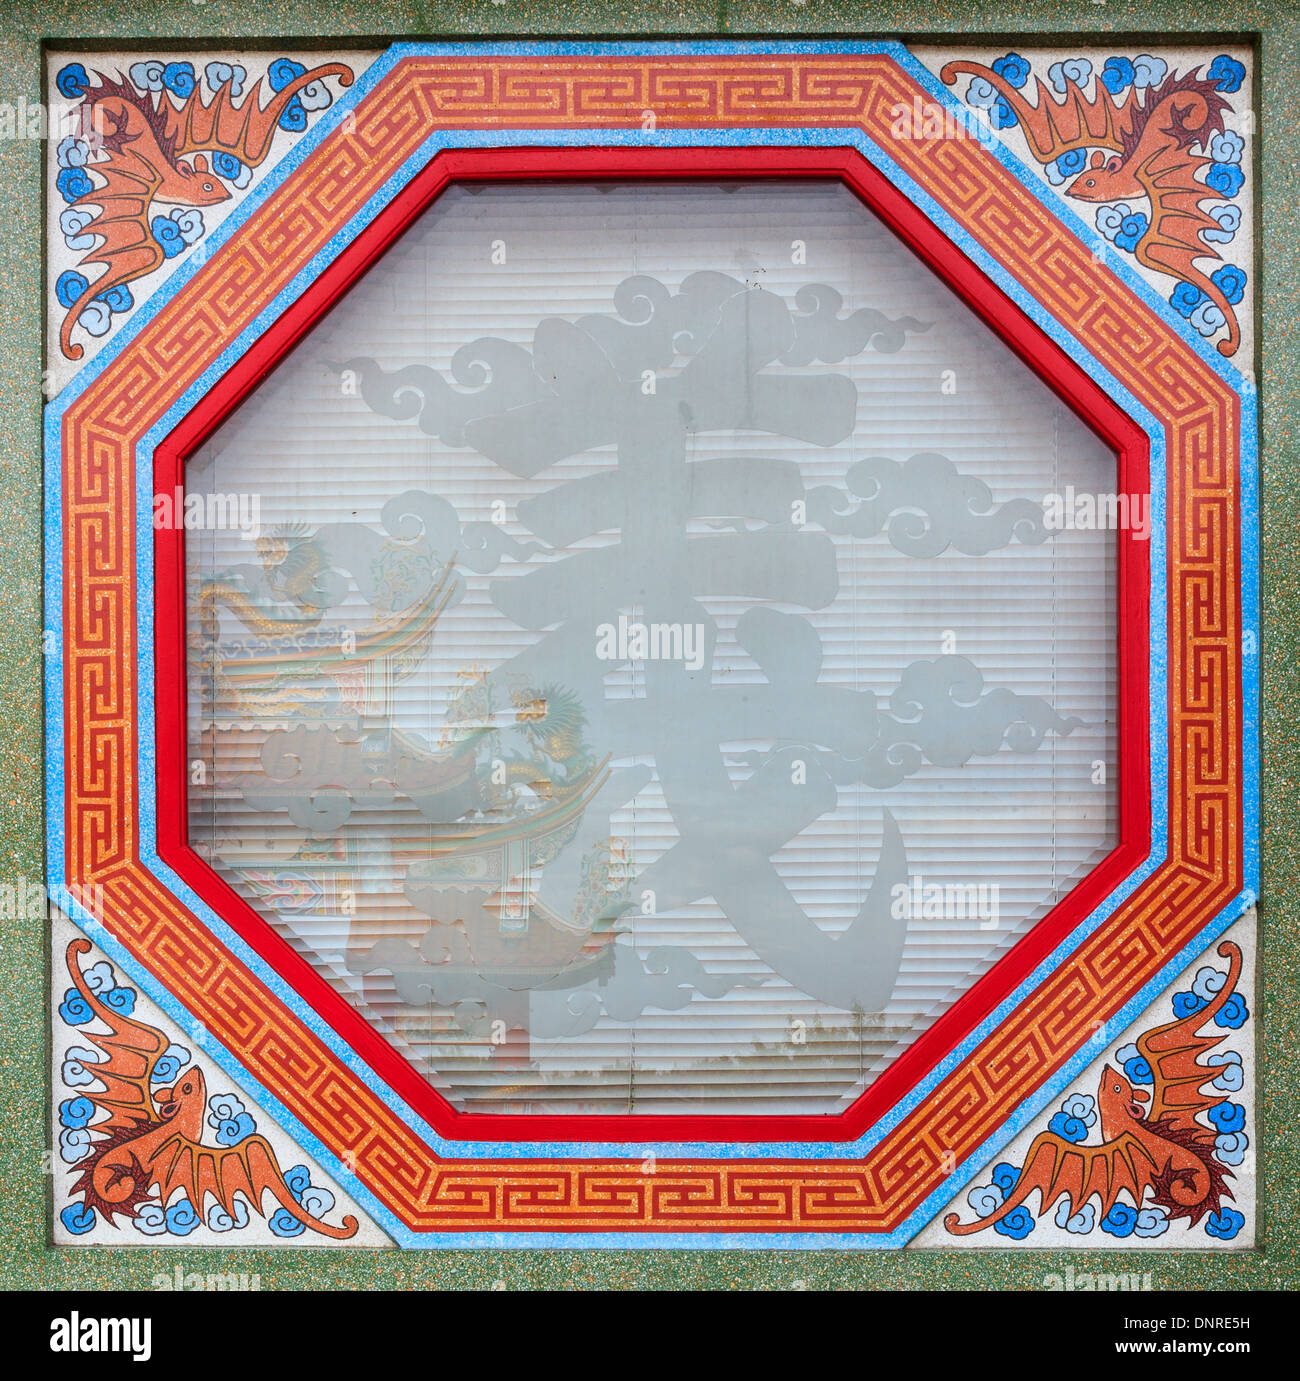 China style frame red color stock photo 65054909 alamy china style frame red color jeuxipadfo Image collections